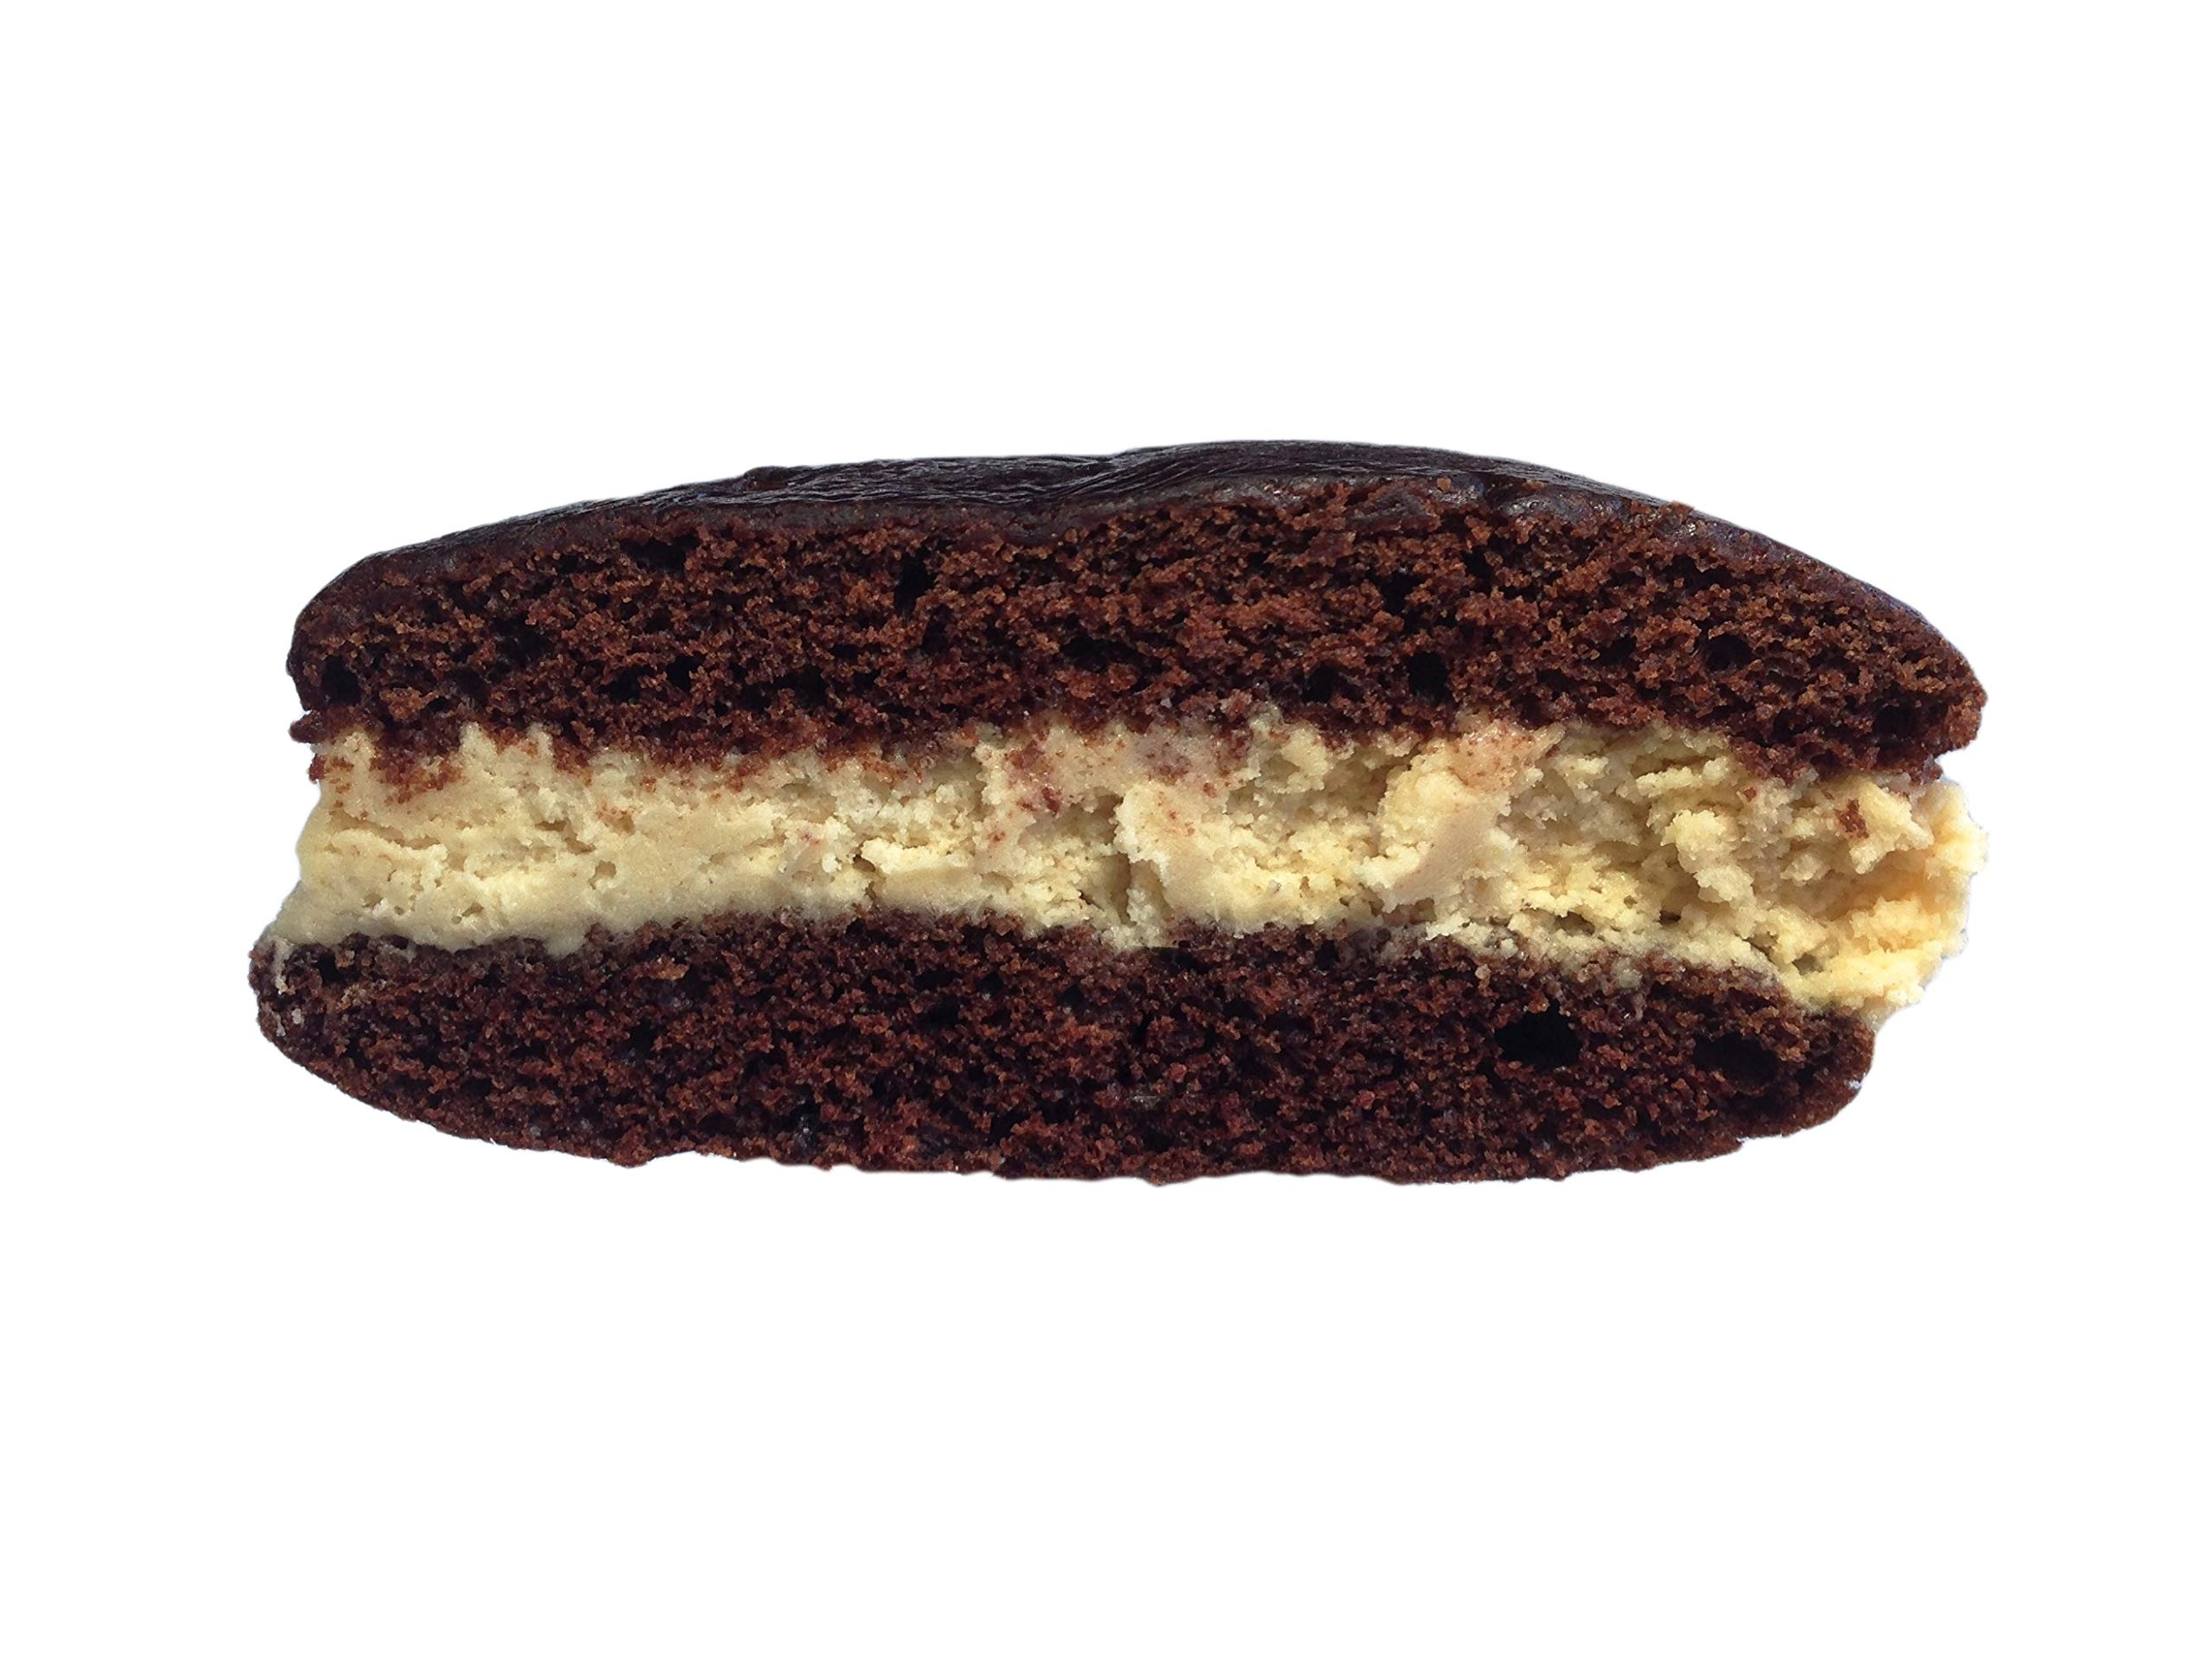 Bird-in-Hand Bake Shop Chocolate Peanut Butter Lover Whoopie Pies, Favorite Amish Food (Pack of 12) by AmishTastes